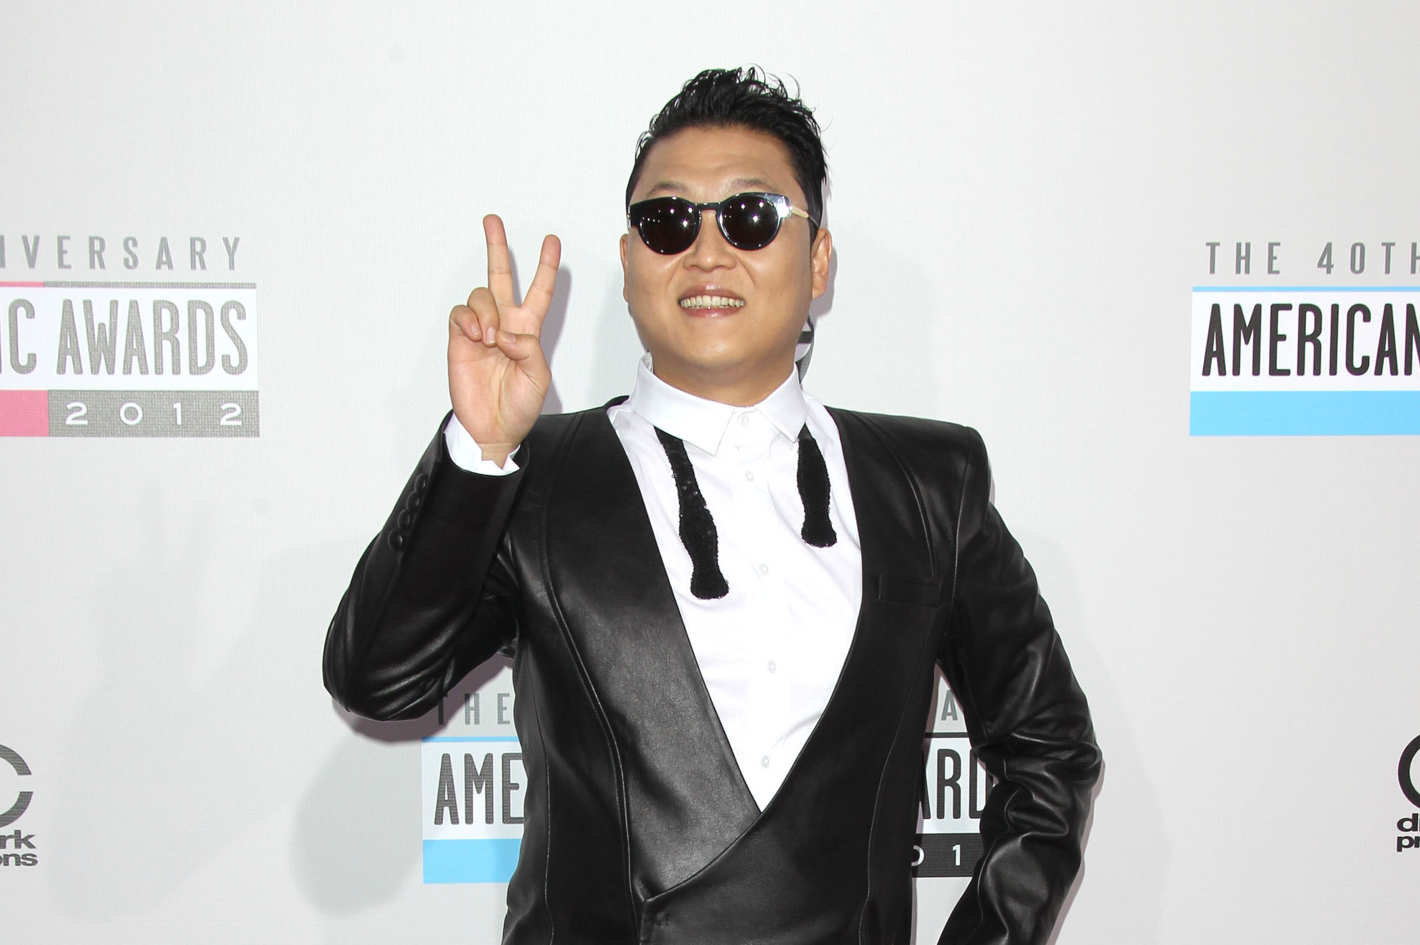 PSY Reportedly Scouted Trainees From Famous Companies To Debut In